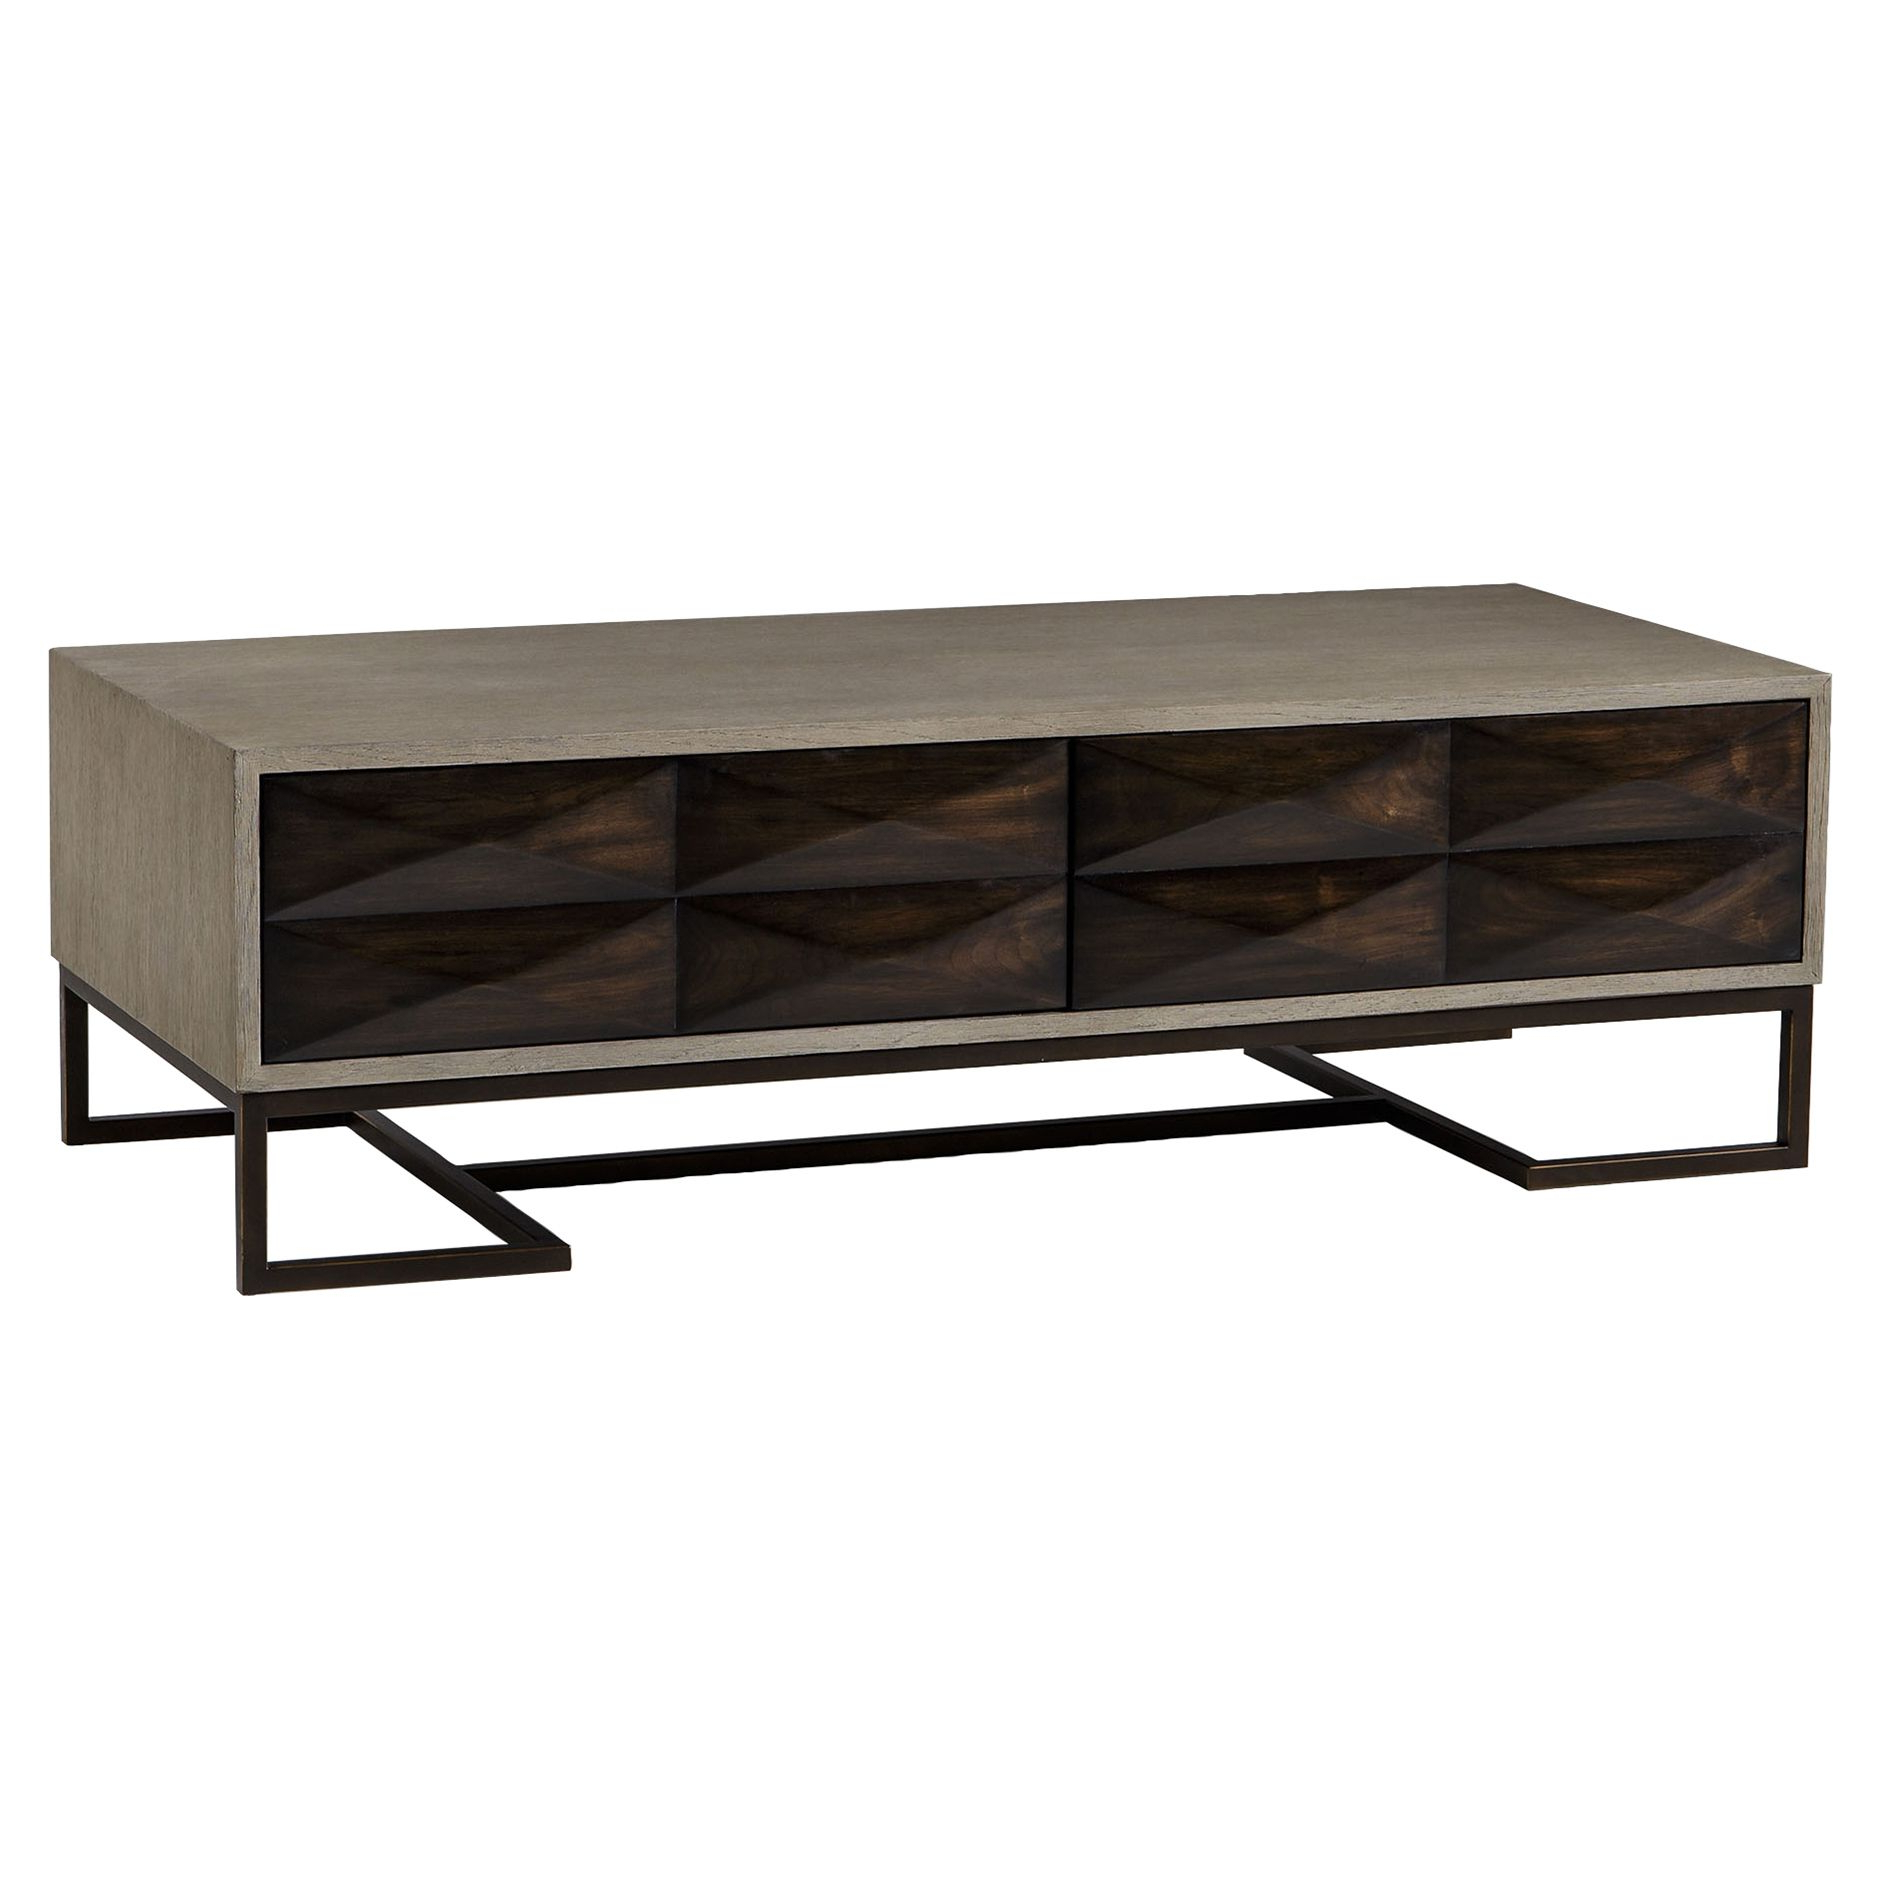 Casey Industrial Loft Open Grey Grain 2 Drawer Cofee Table In 2018 With Regard To Well Known Natural 2 Drawer Shutter Coffee Tables (View 12 of 20)